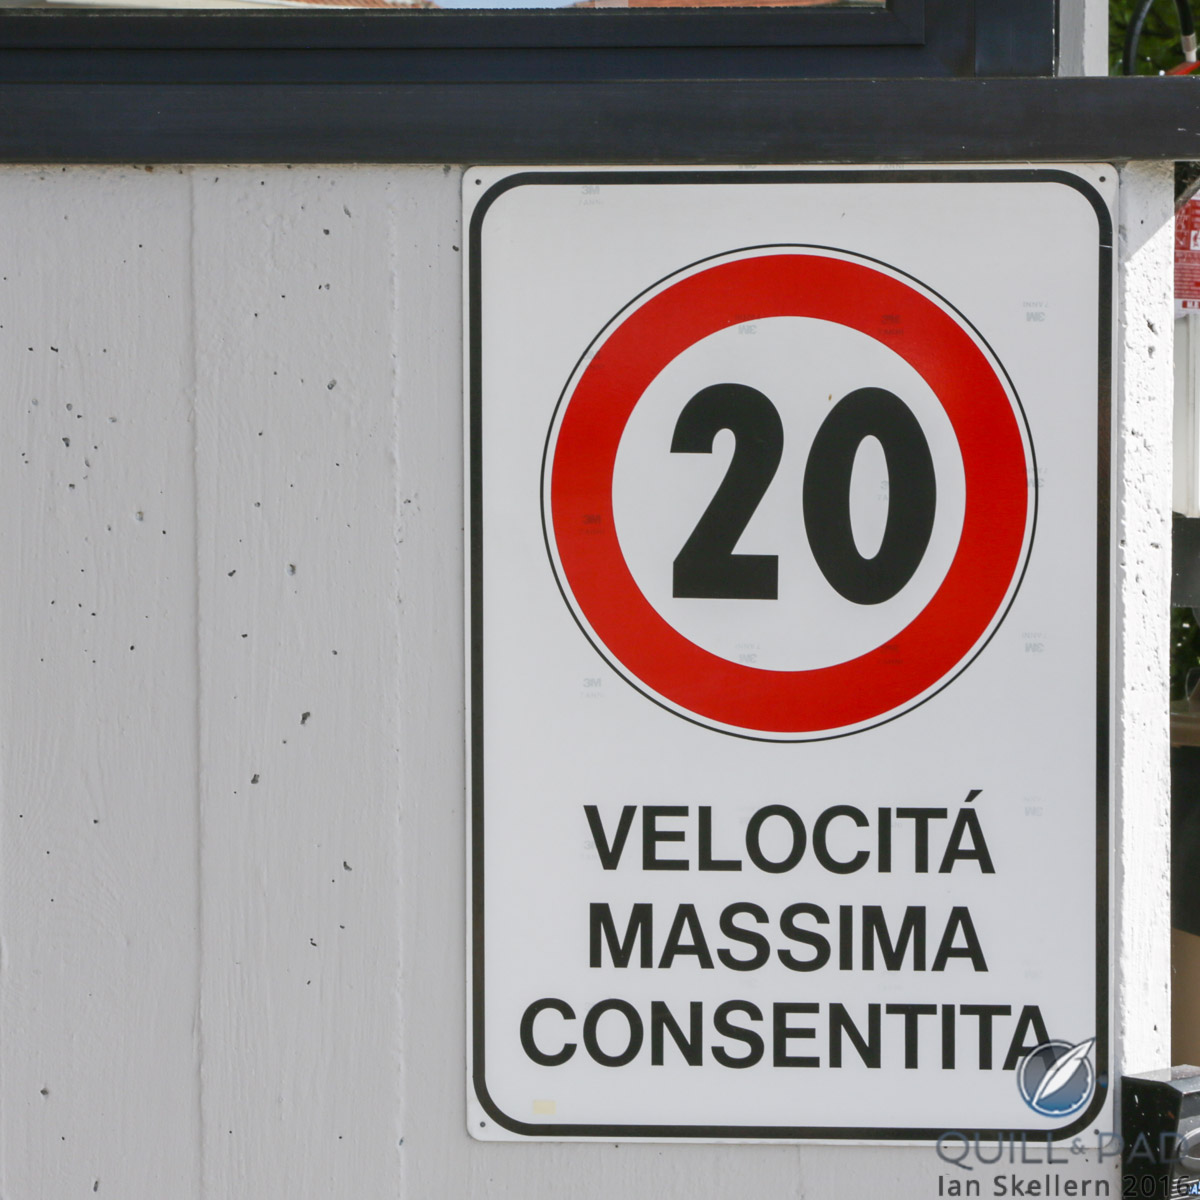 uite a restrictive speed limit in the home of the world's fastest supercars